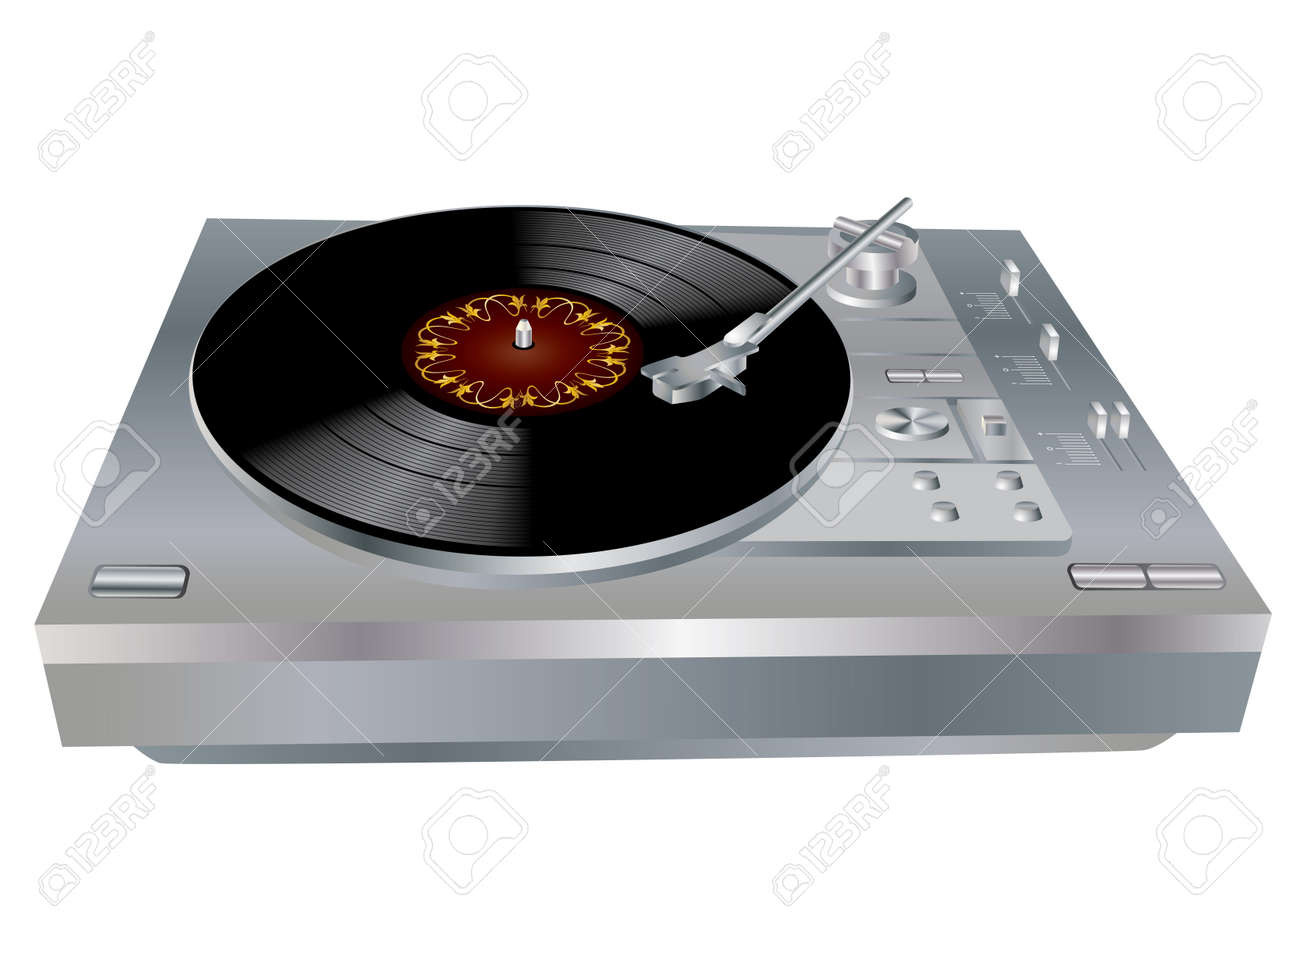 the image of a vinyl dj u0027s deck grey colour on white background